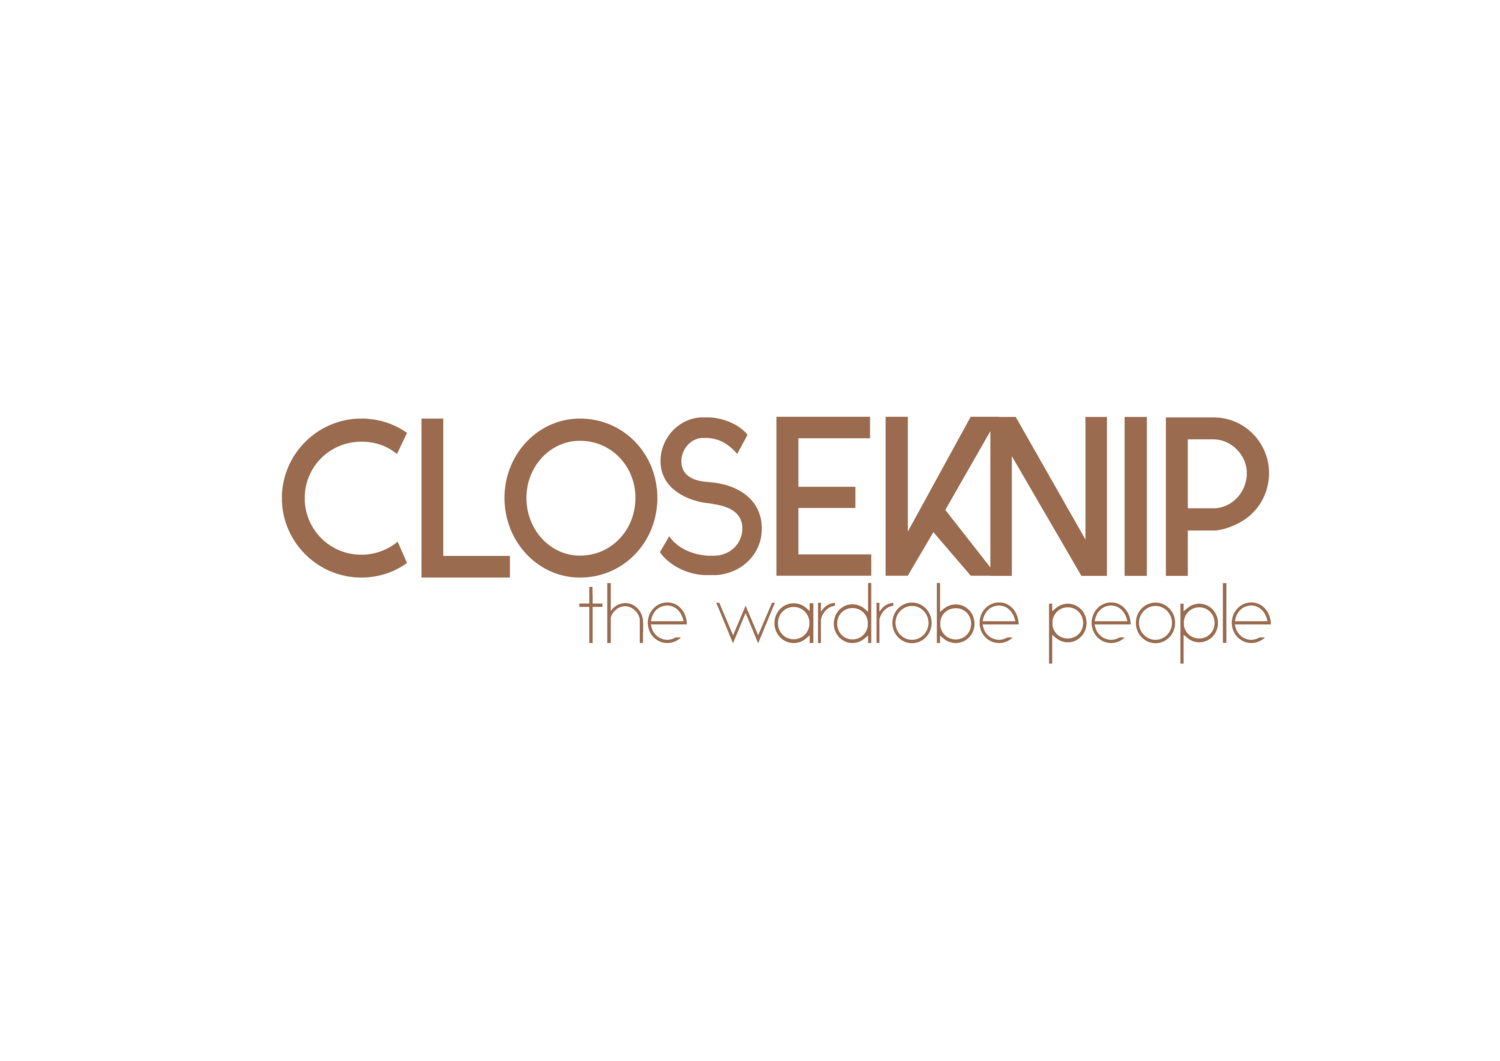 Closeknip-The Wardrobe People